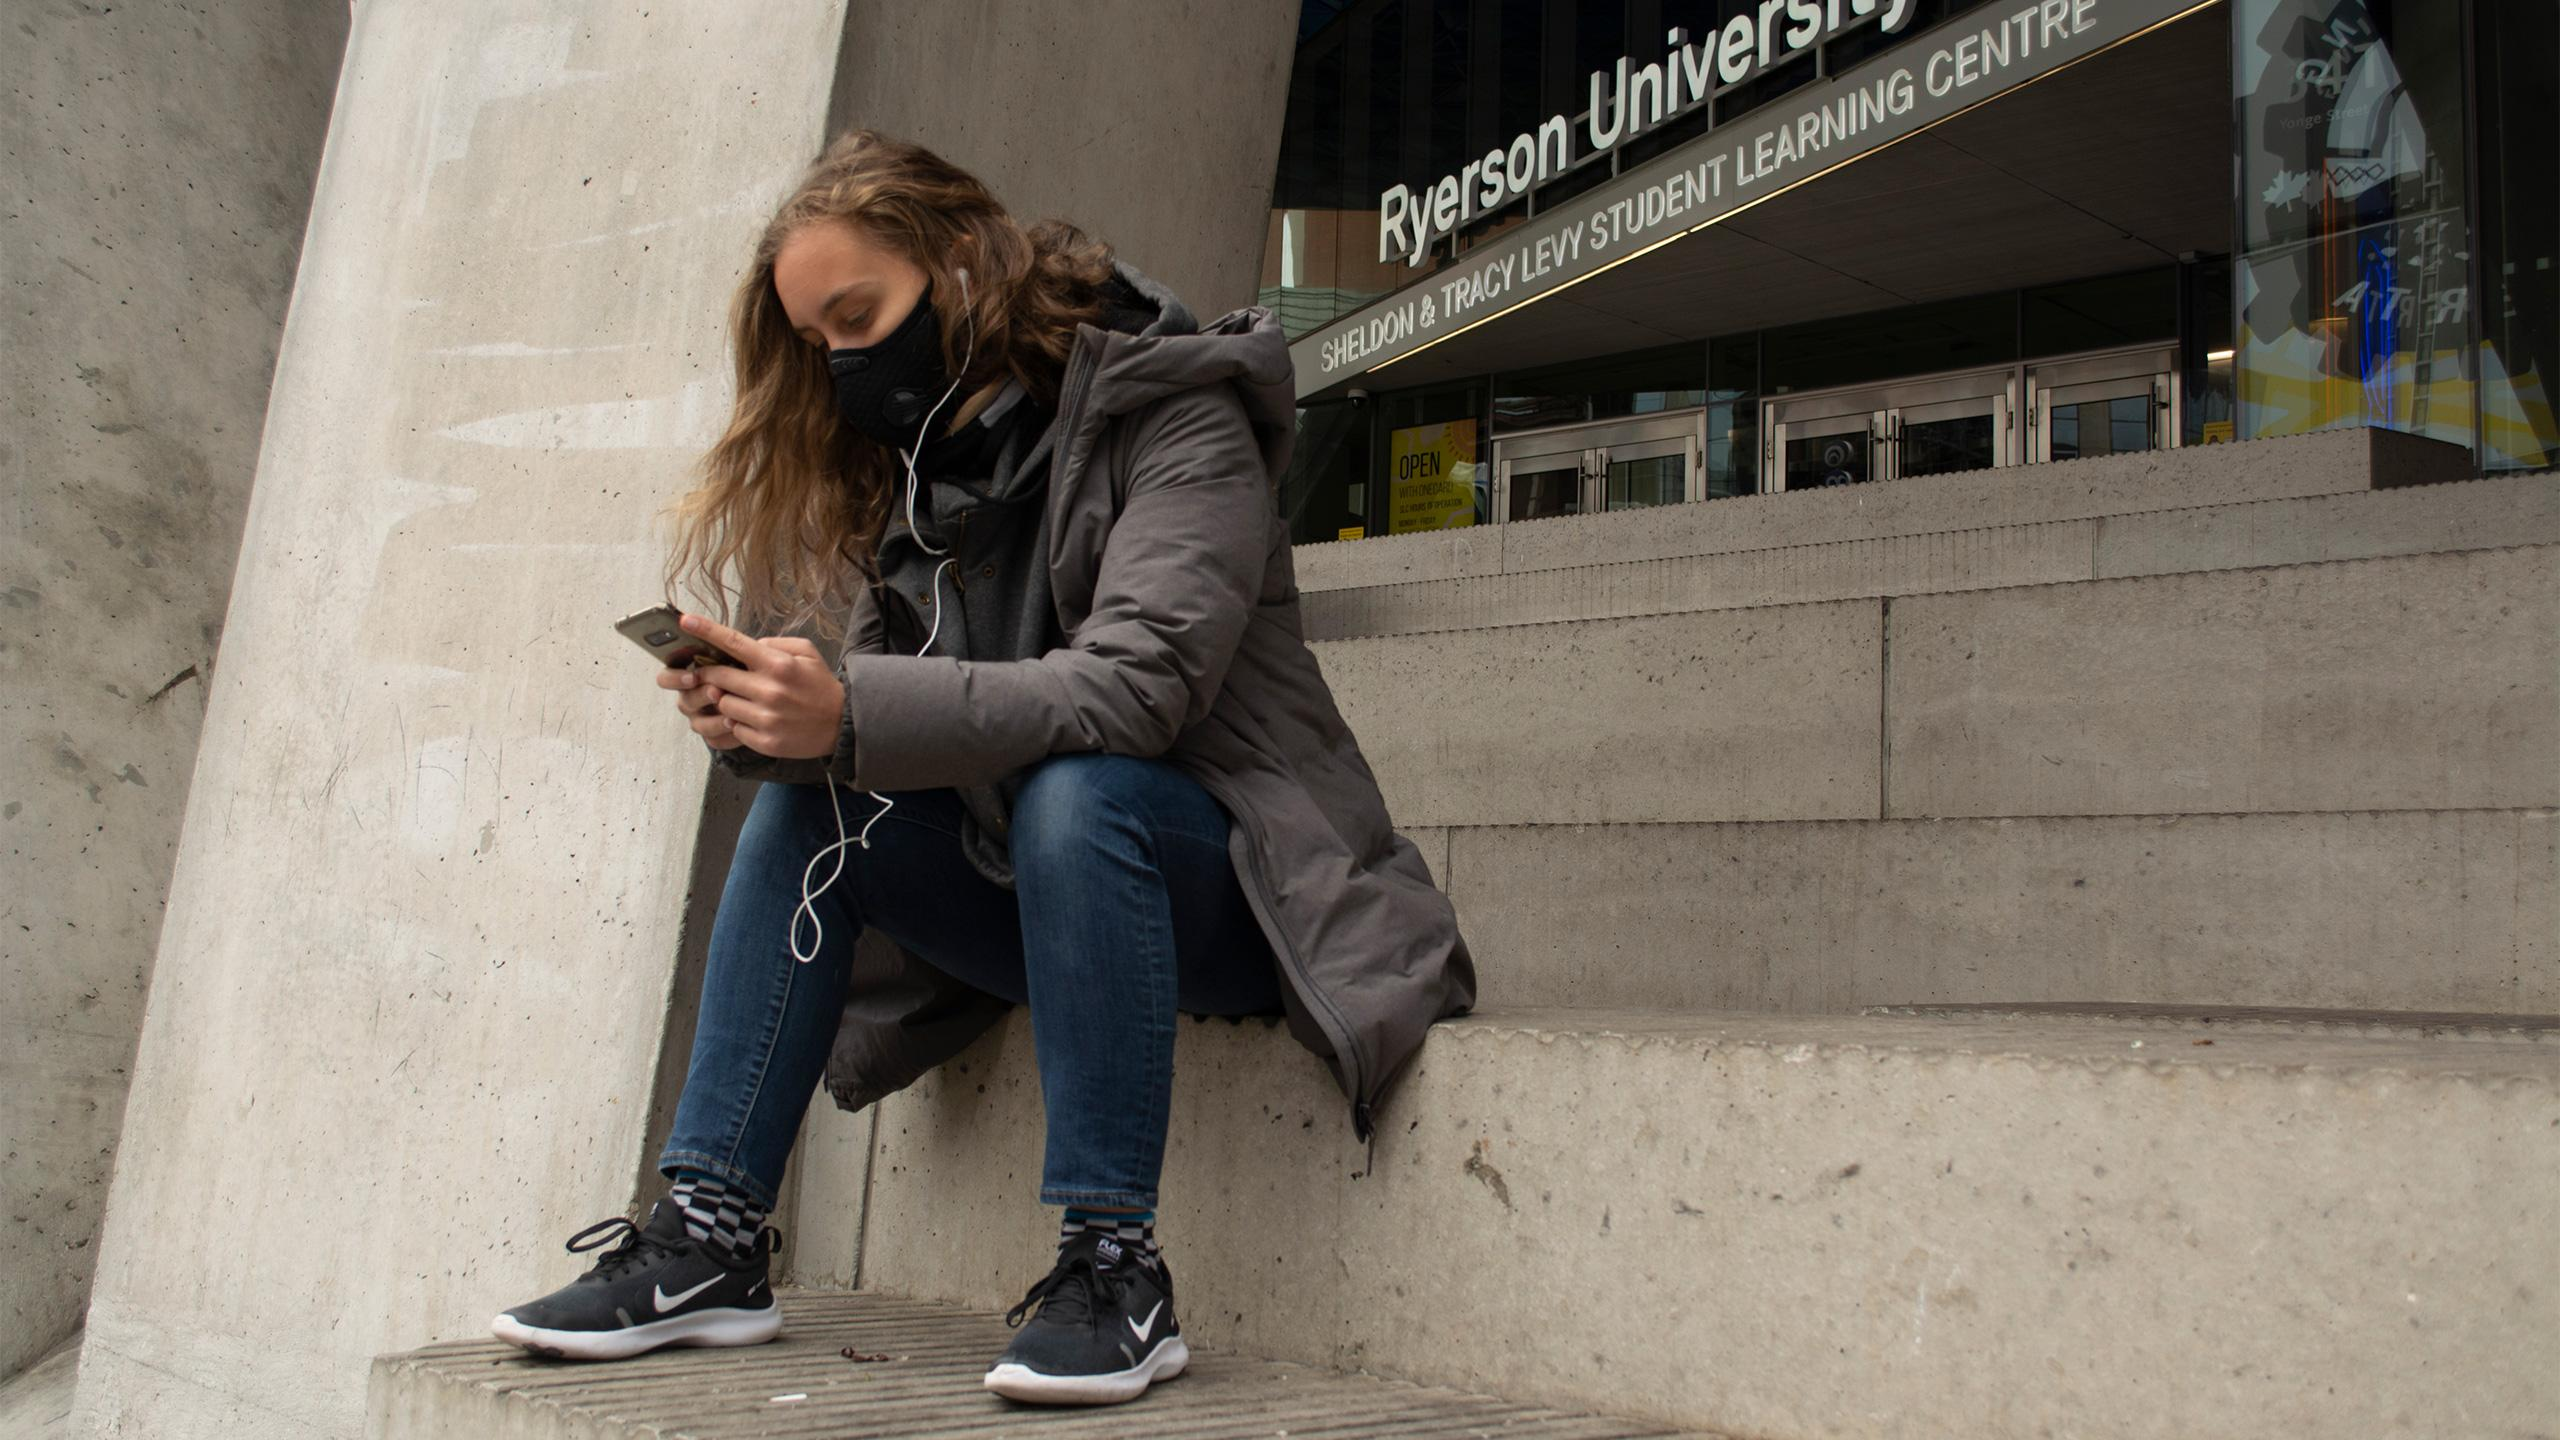 Student wearing a mask sitting on the steps of SLC looking at their phone.